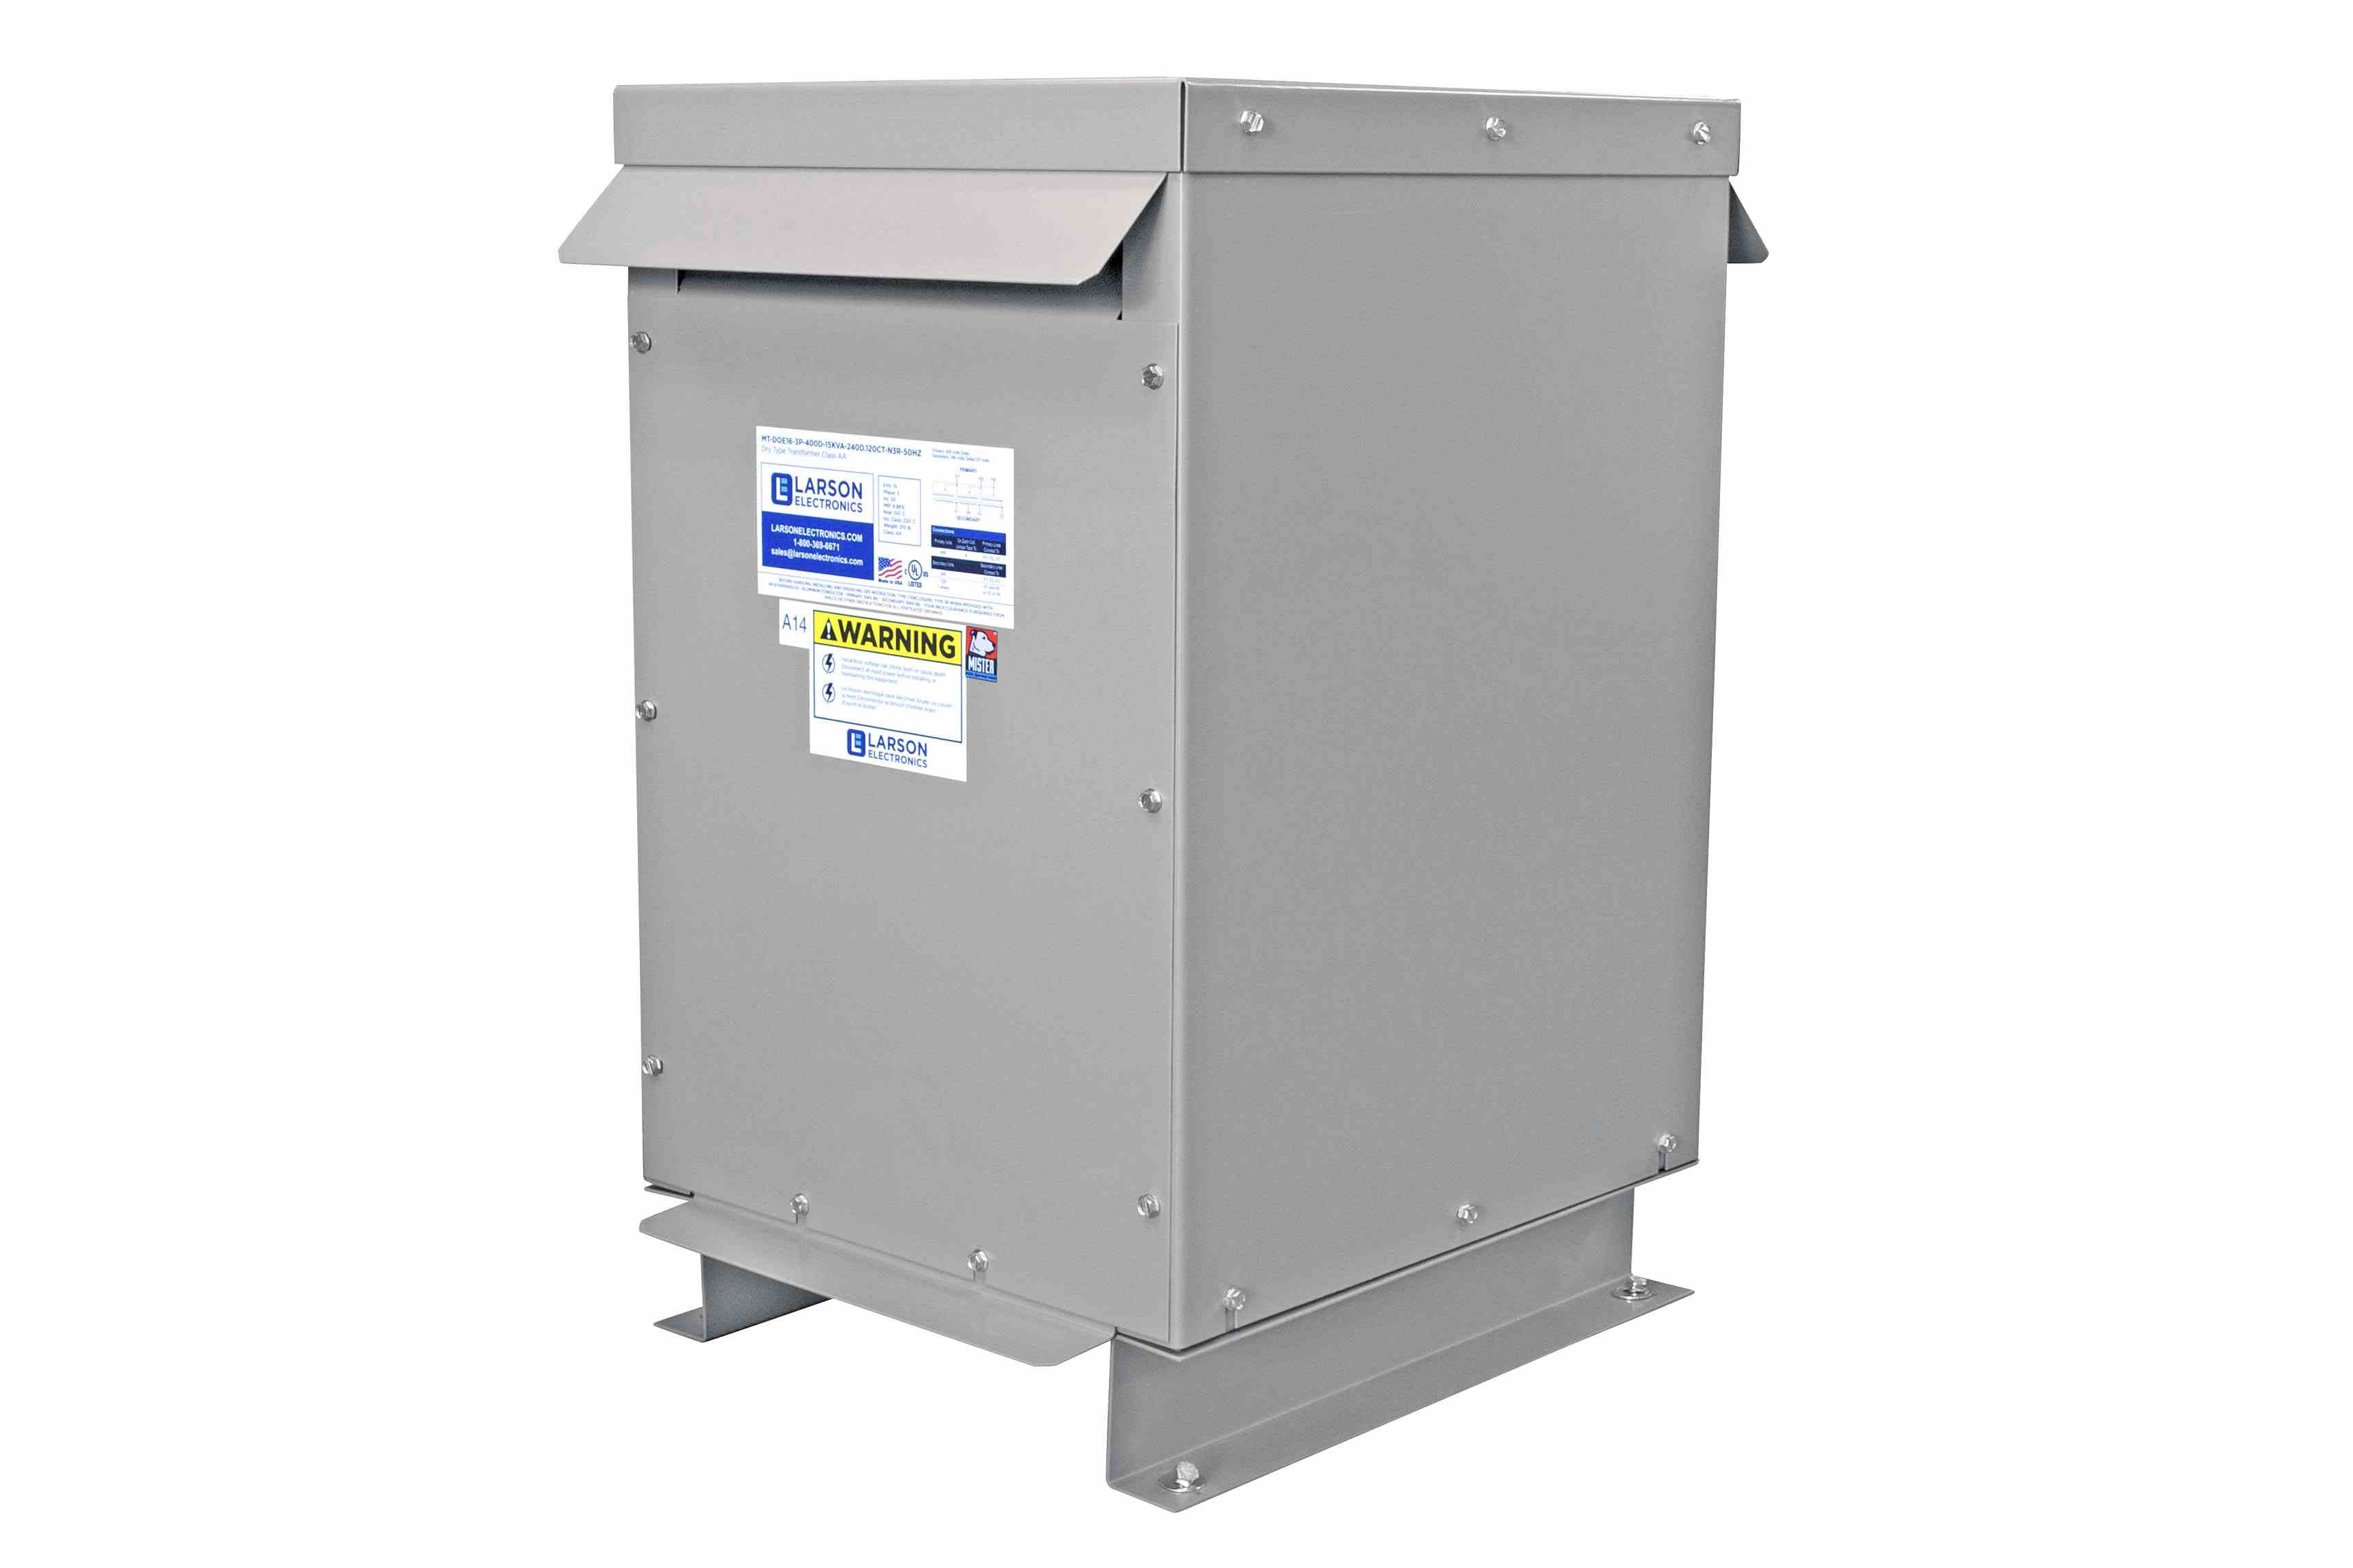 50 kVA 1PH DOE Efficiency Transformer, 480V Primary, 120/240V Secondary, NEMA 3R, Ventilated, 60 Hz